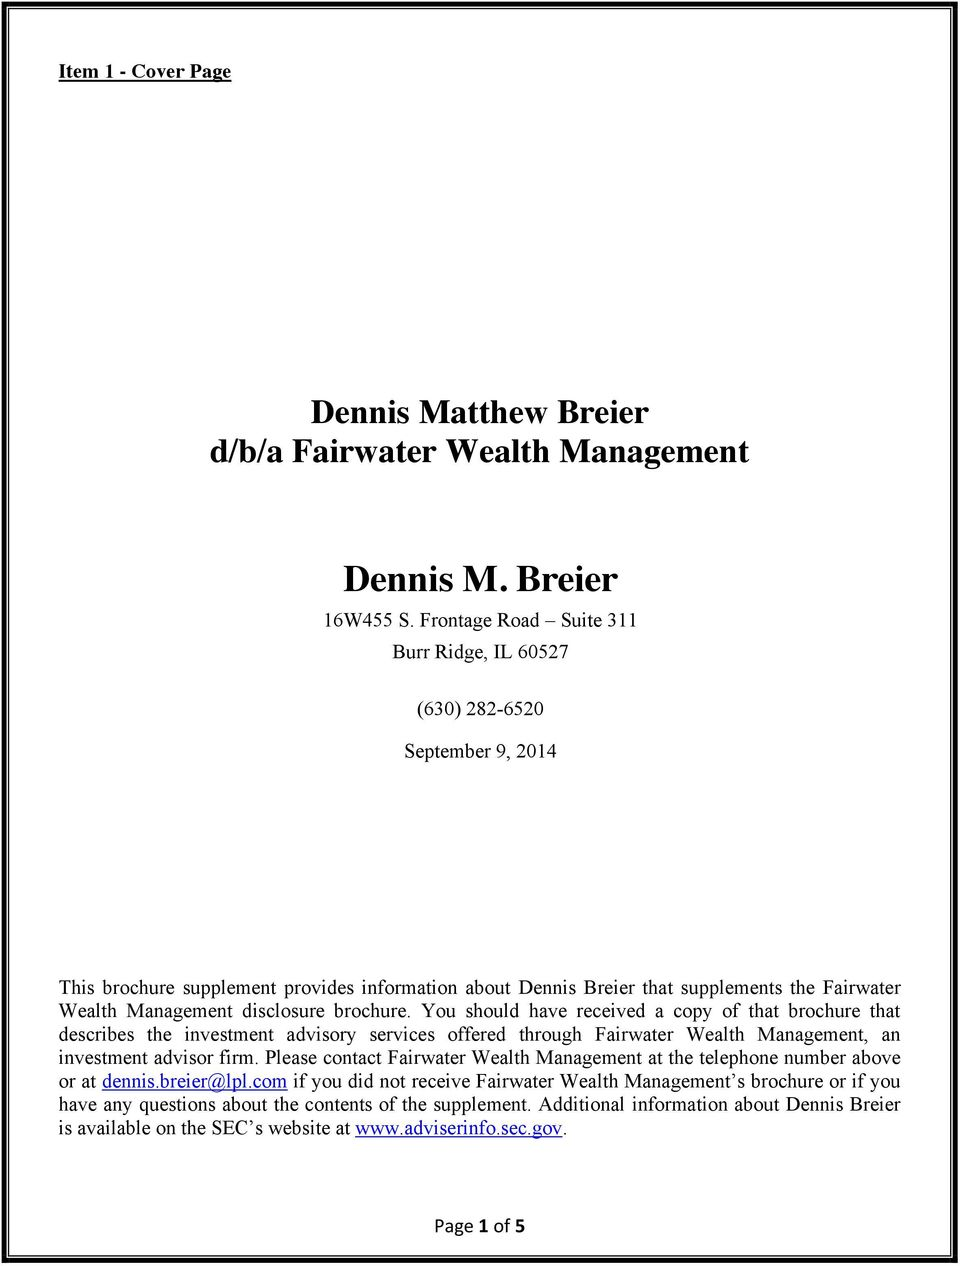 disclosure brochure. You should have received a copy of that brochure that describes the investment advisory services offered through Fairwater Wealth Management, an investment advisor firm.